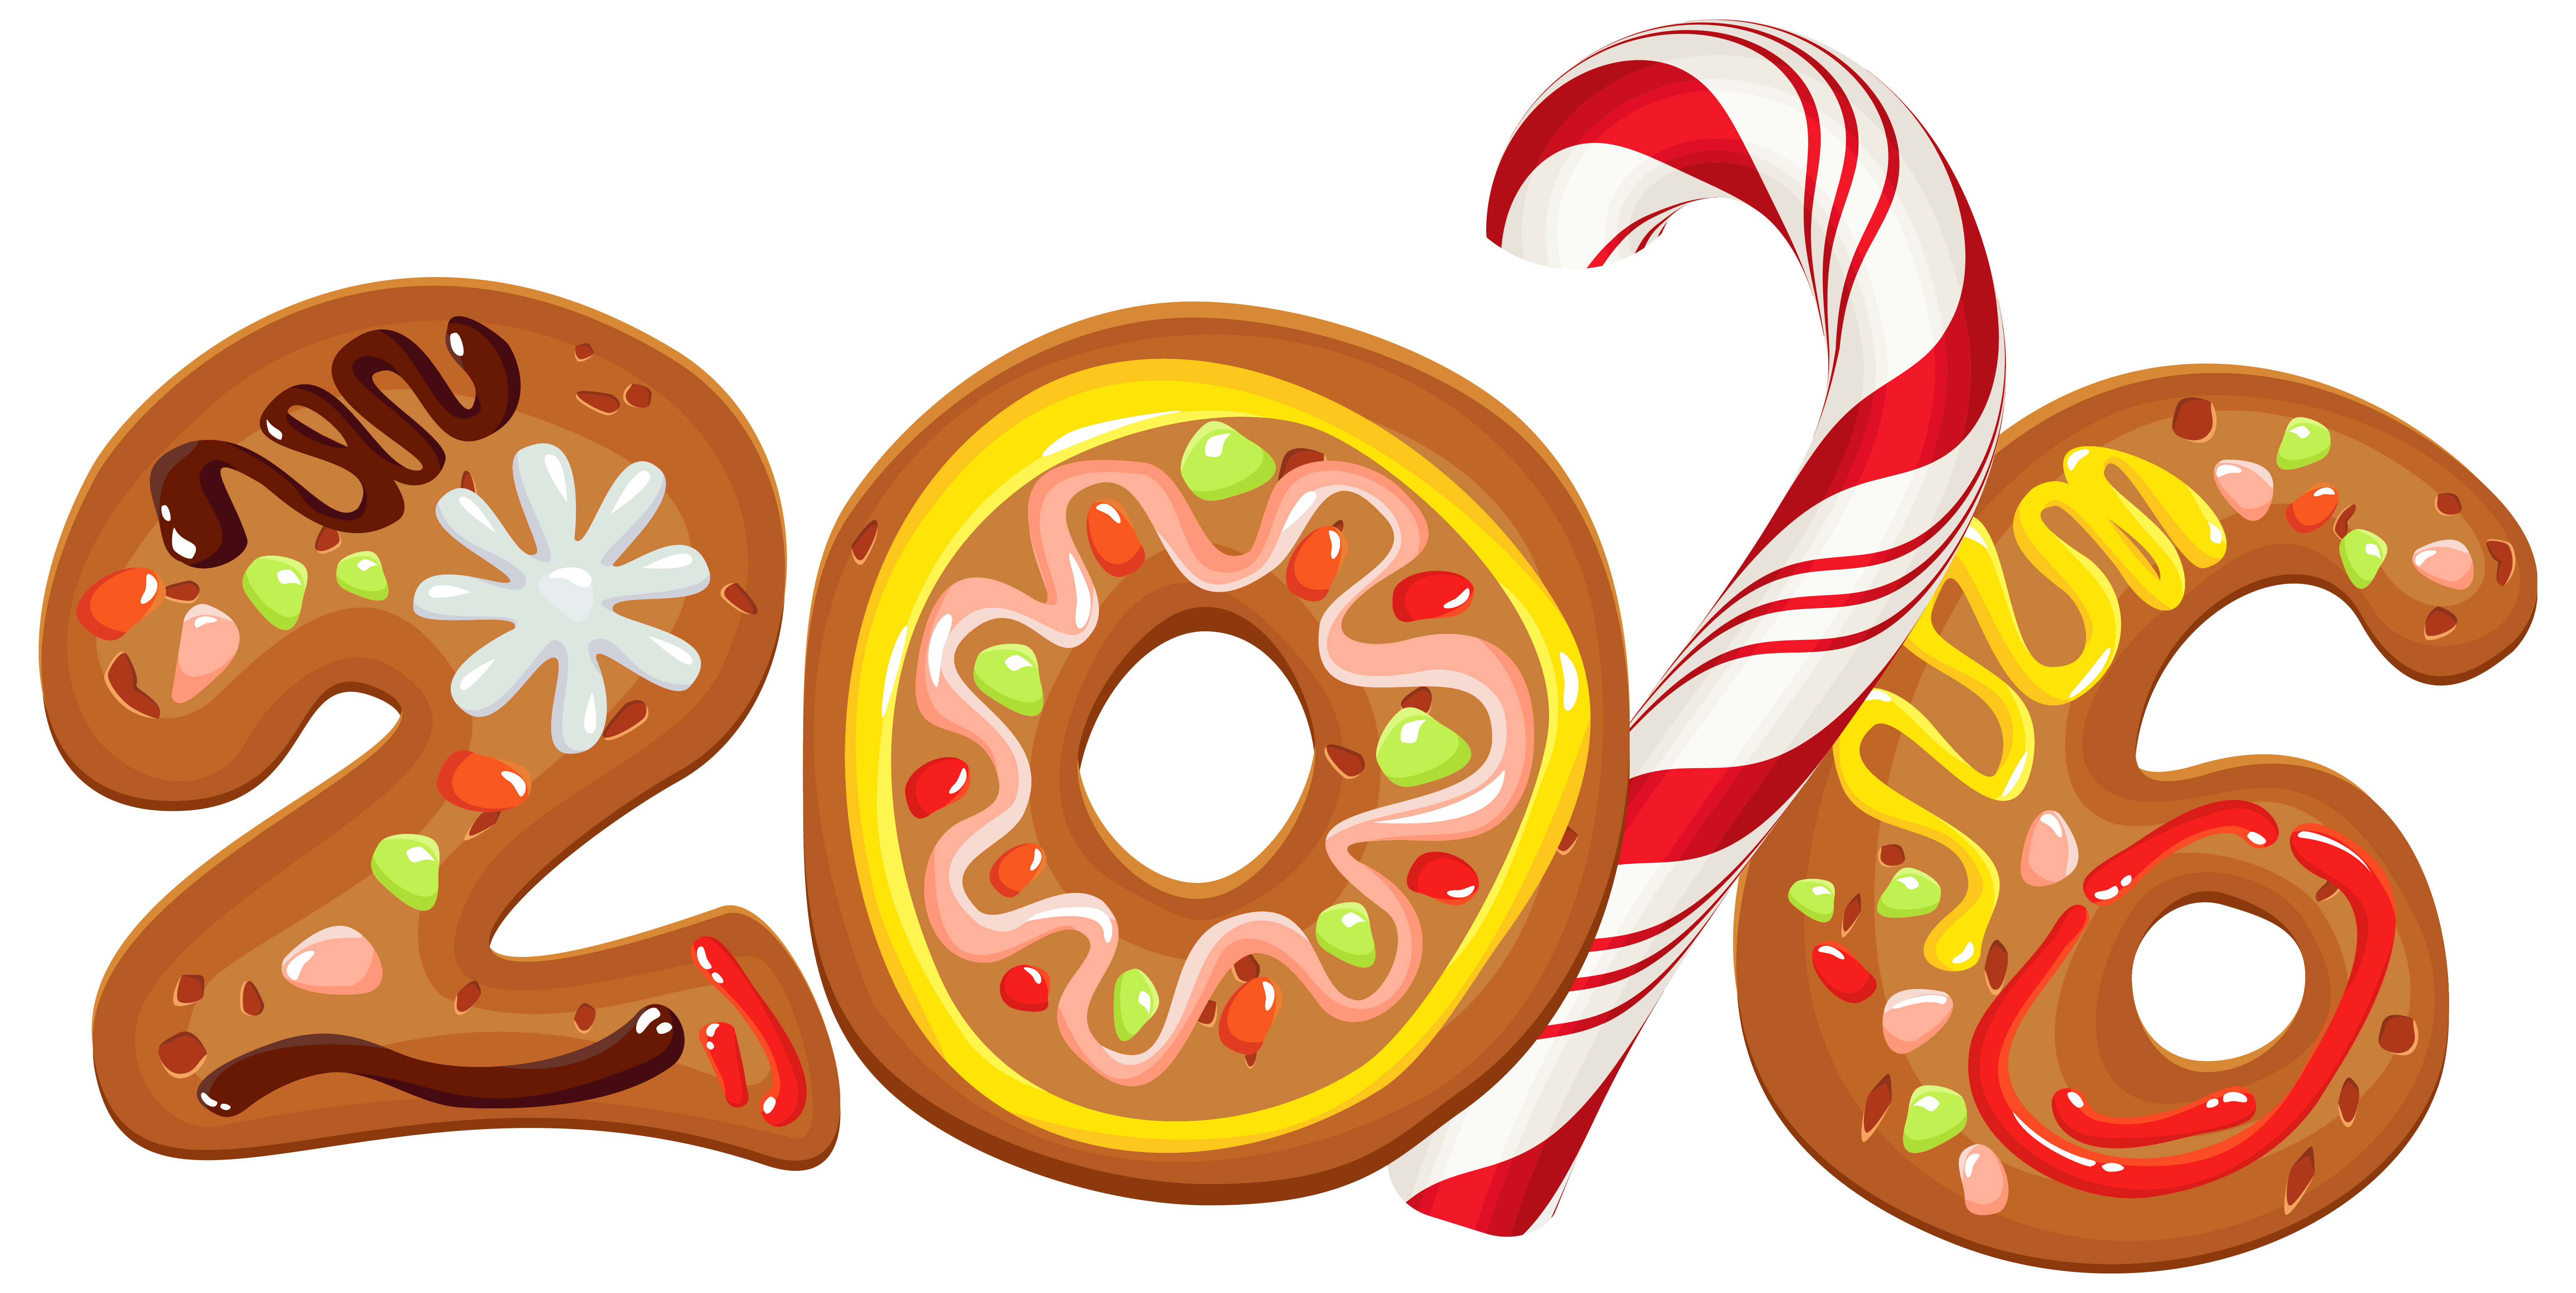 freeuse download  cookie style png. 2016 clipart